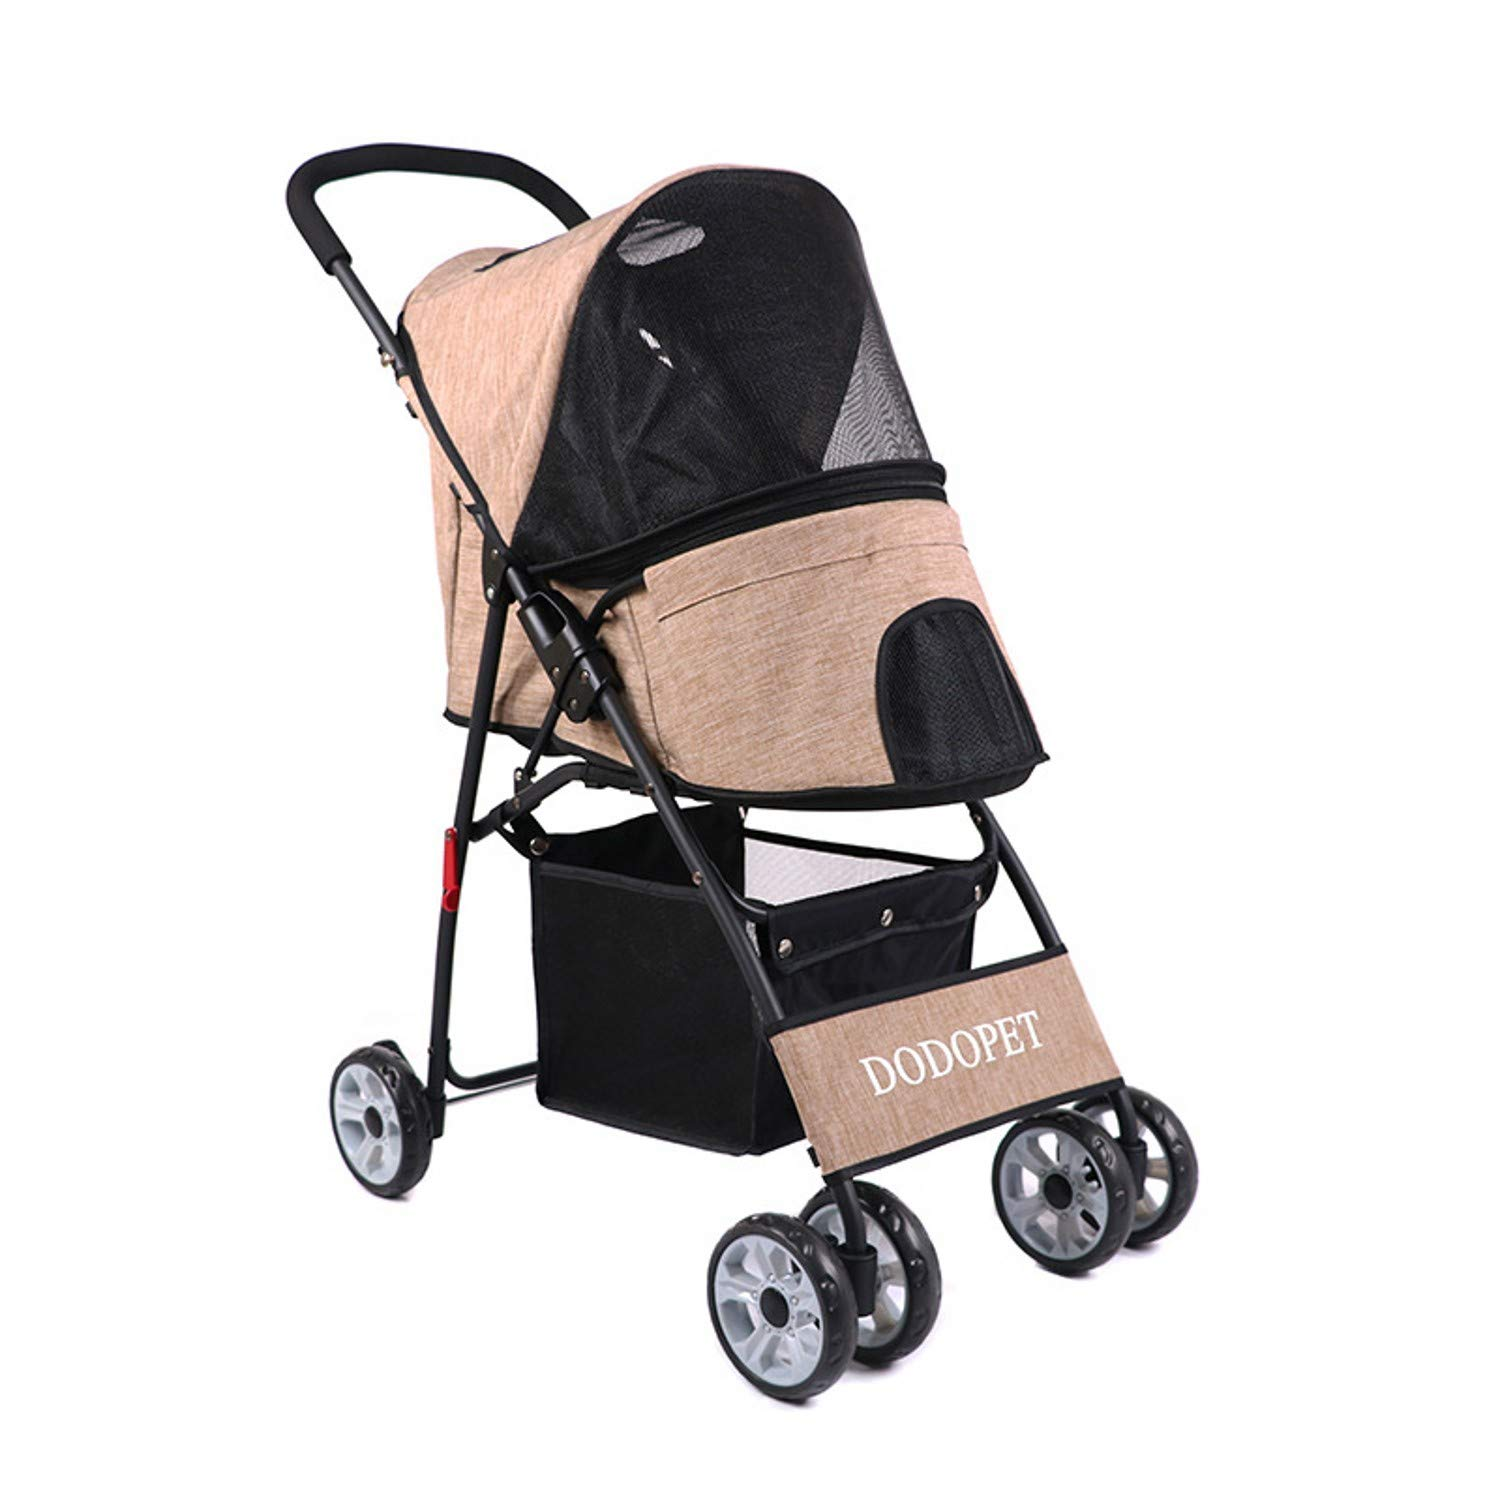 Beige ZH1 Pet Bag Lightweight Pet Stroller Pet Trolley Jogging Cat Dog Carts Carrier Split Type Pet Pushchair Dog Gram Toolless Inssizetion for Small Dogs 10kg (color   Beige)